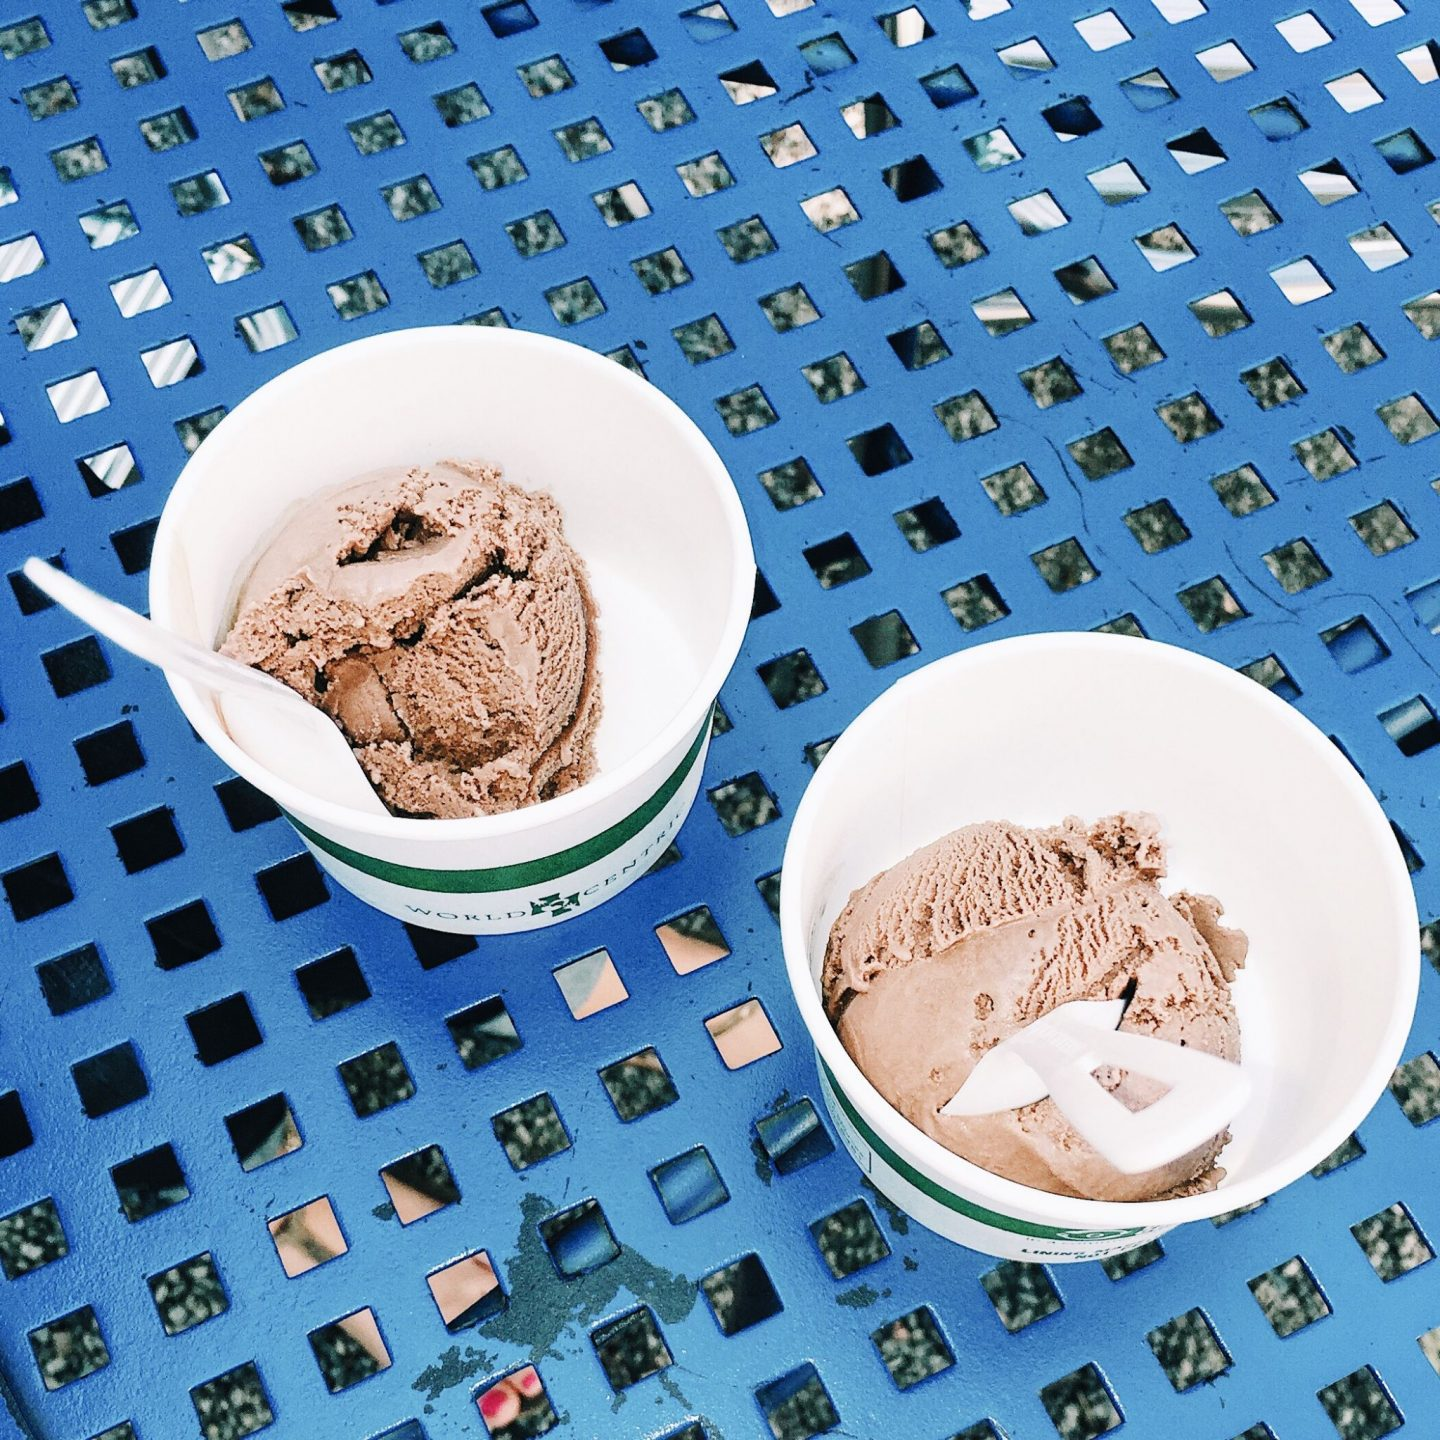 chocolate ice cream sitting on a blue table